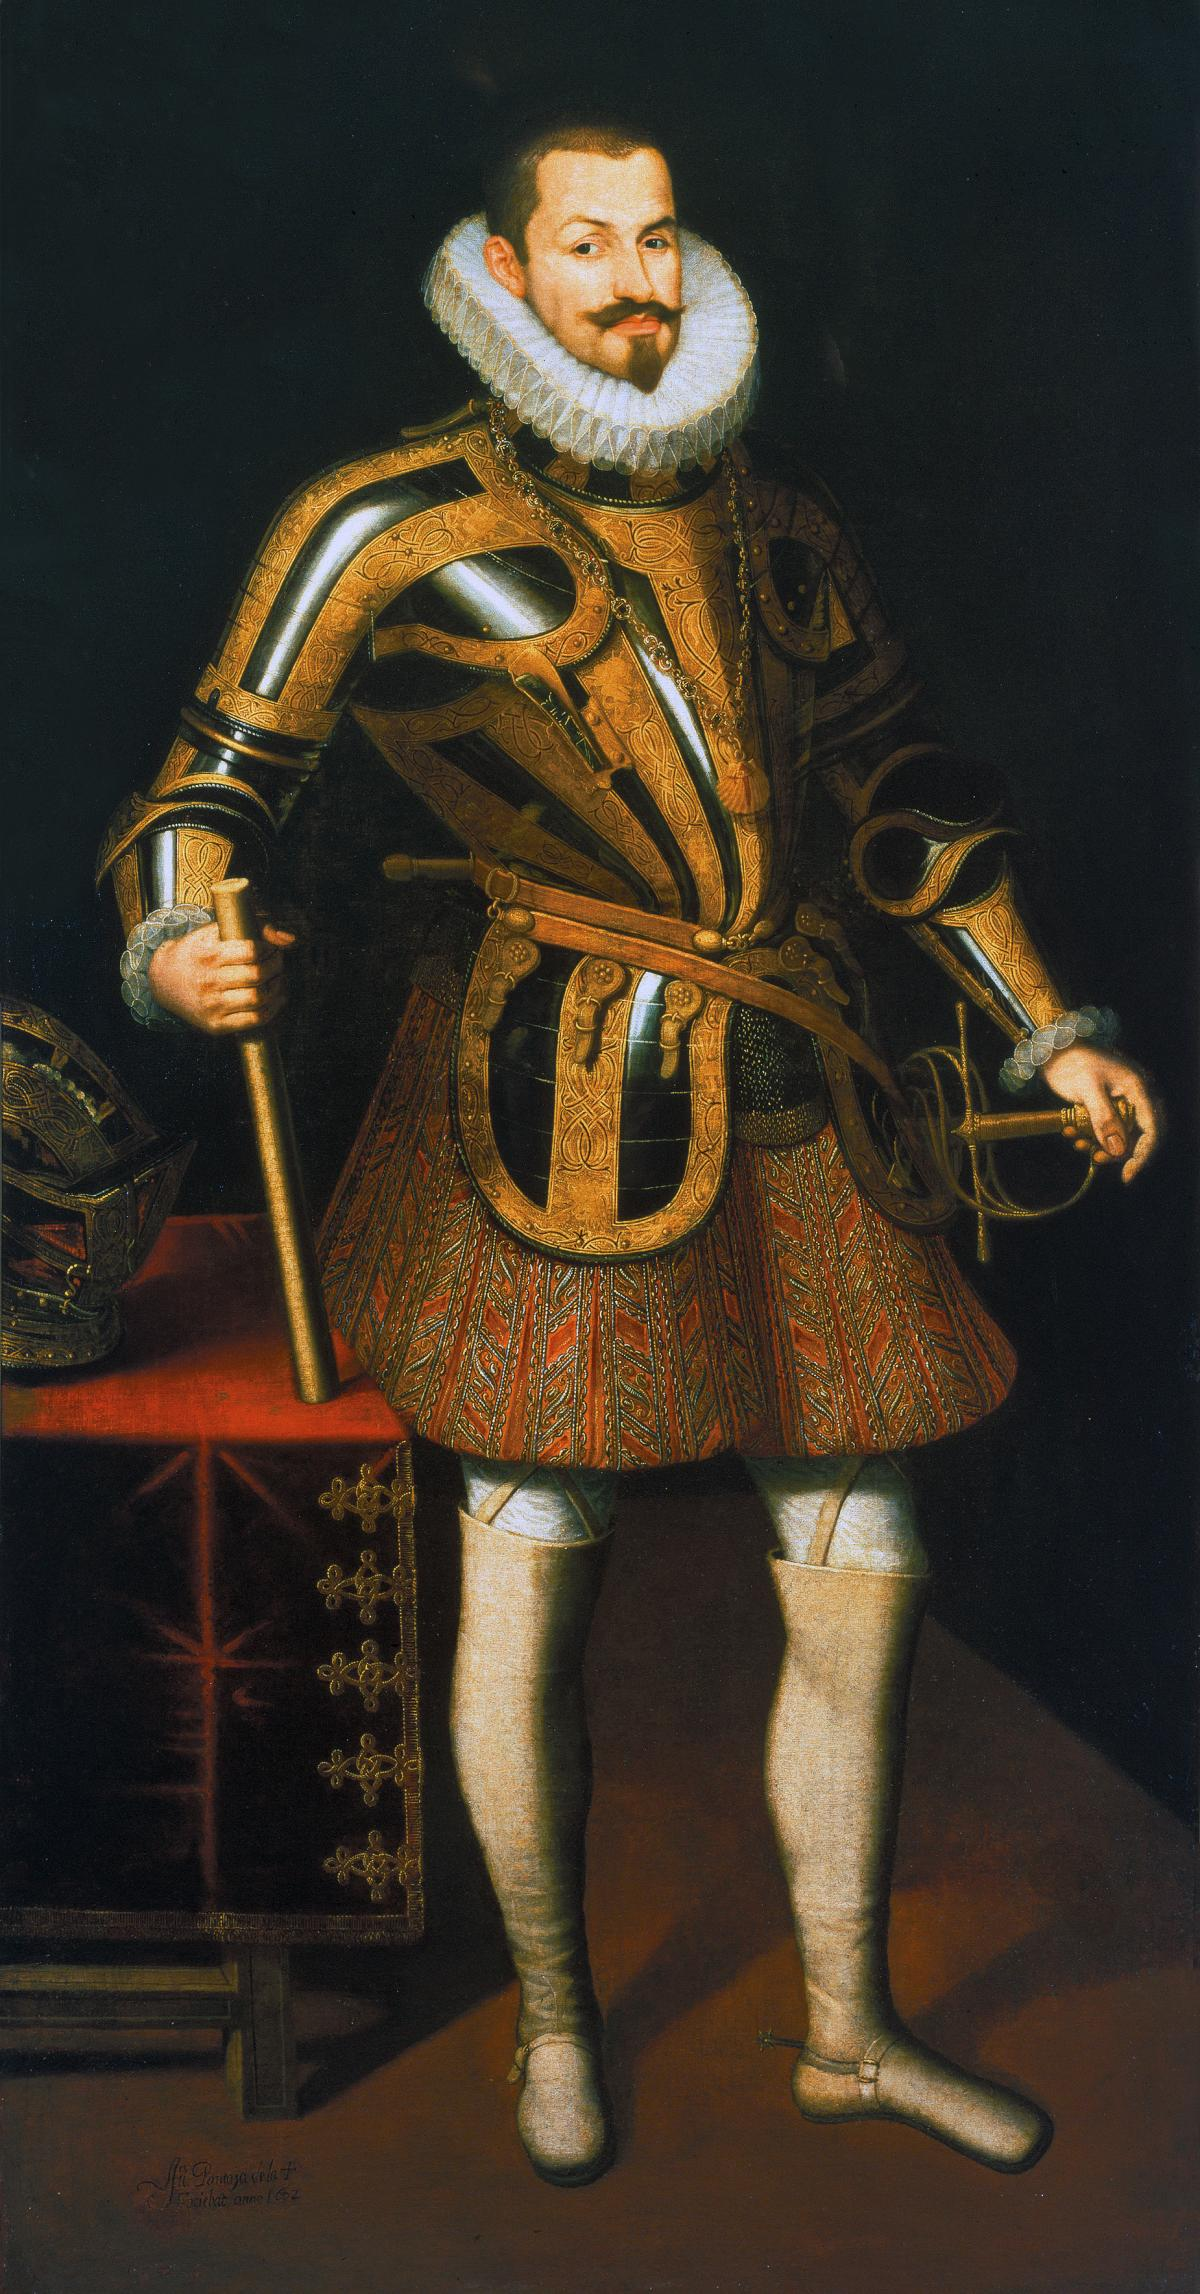 The Duke of Lerma, wearing a ruffled collar and armor with embroidered pantaloons, holding a map in one hand and sword in the other